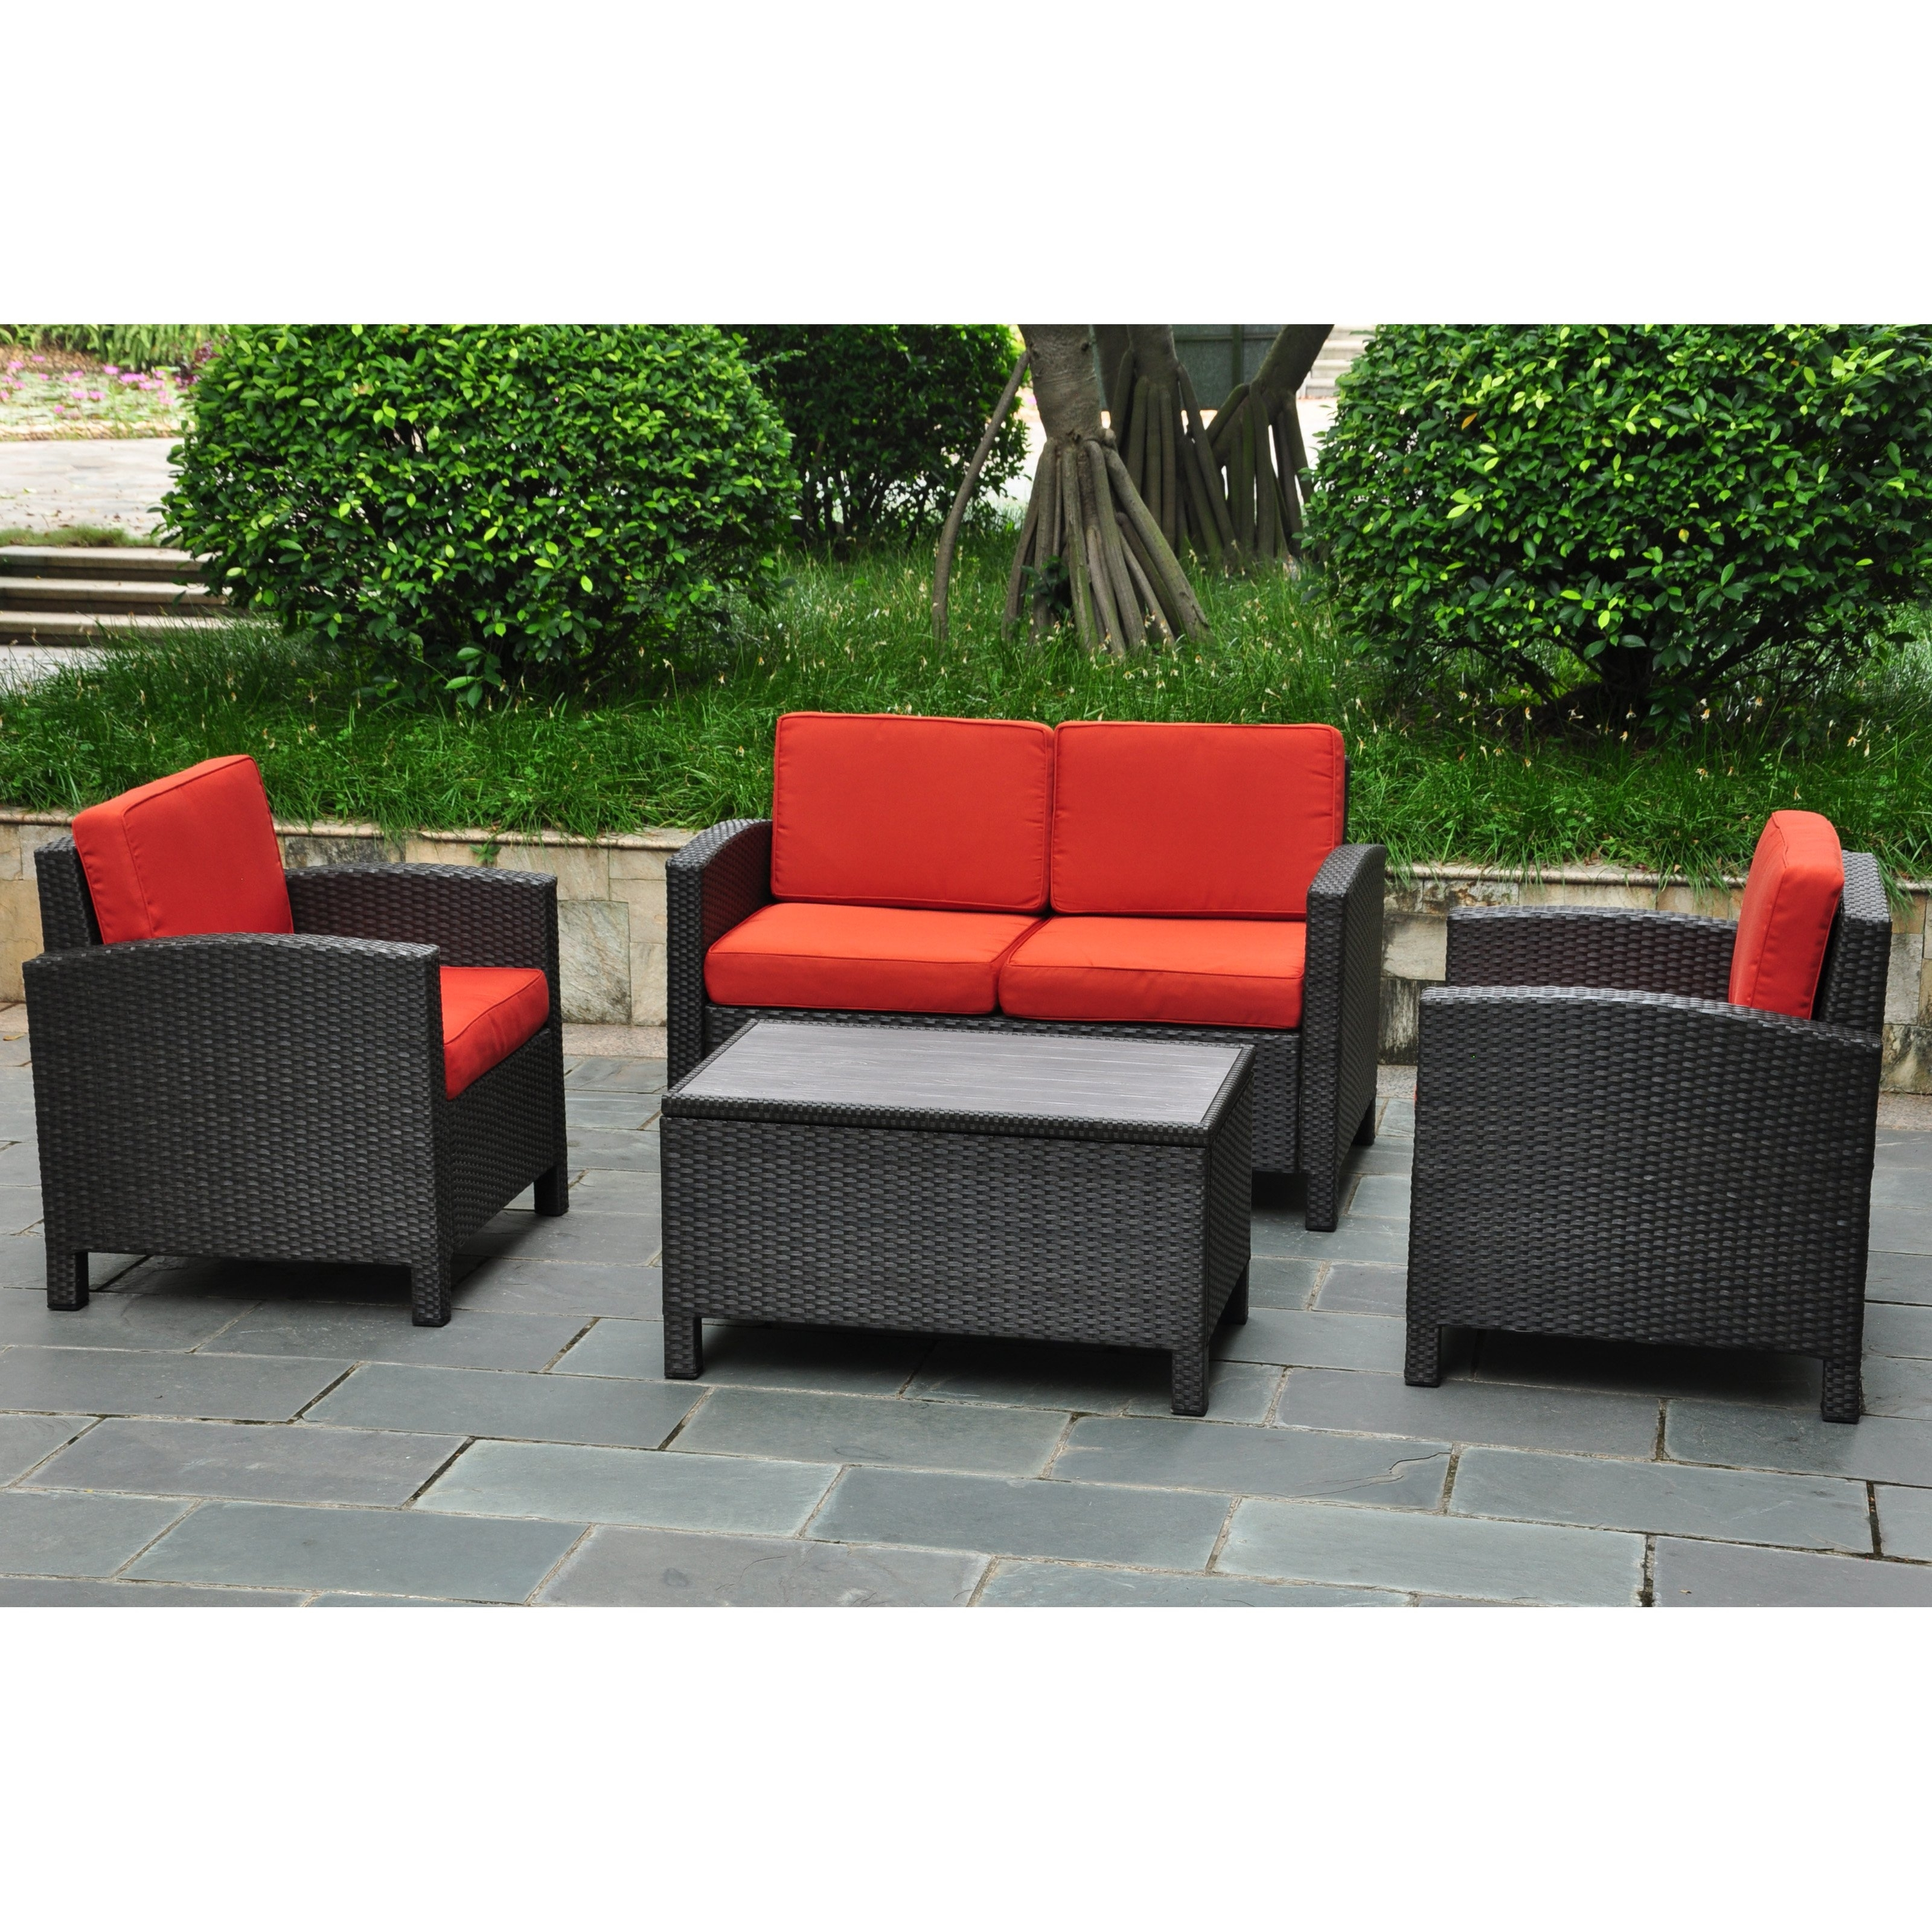 International Caravan Barcelona Resin Wicker Outdoor Patio Set With Throughout 2017 Patio Conversation Sets With Storage (View 4 of 15)